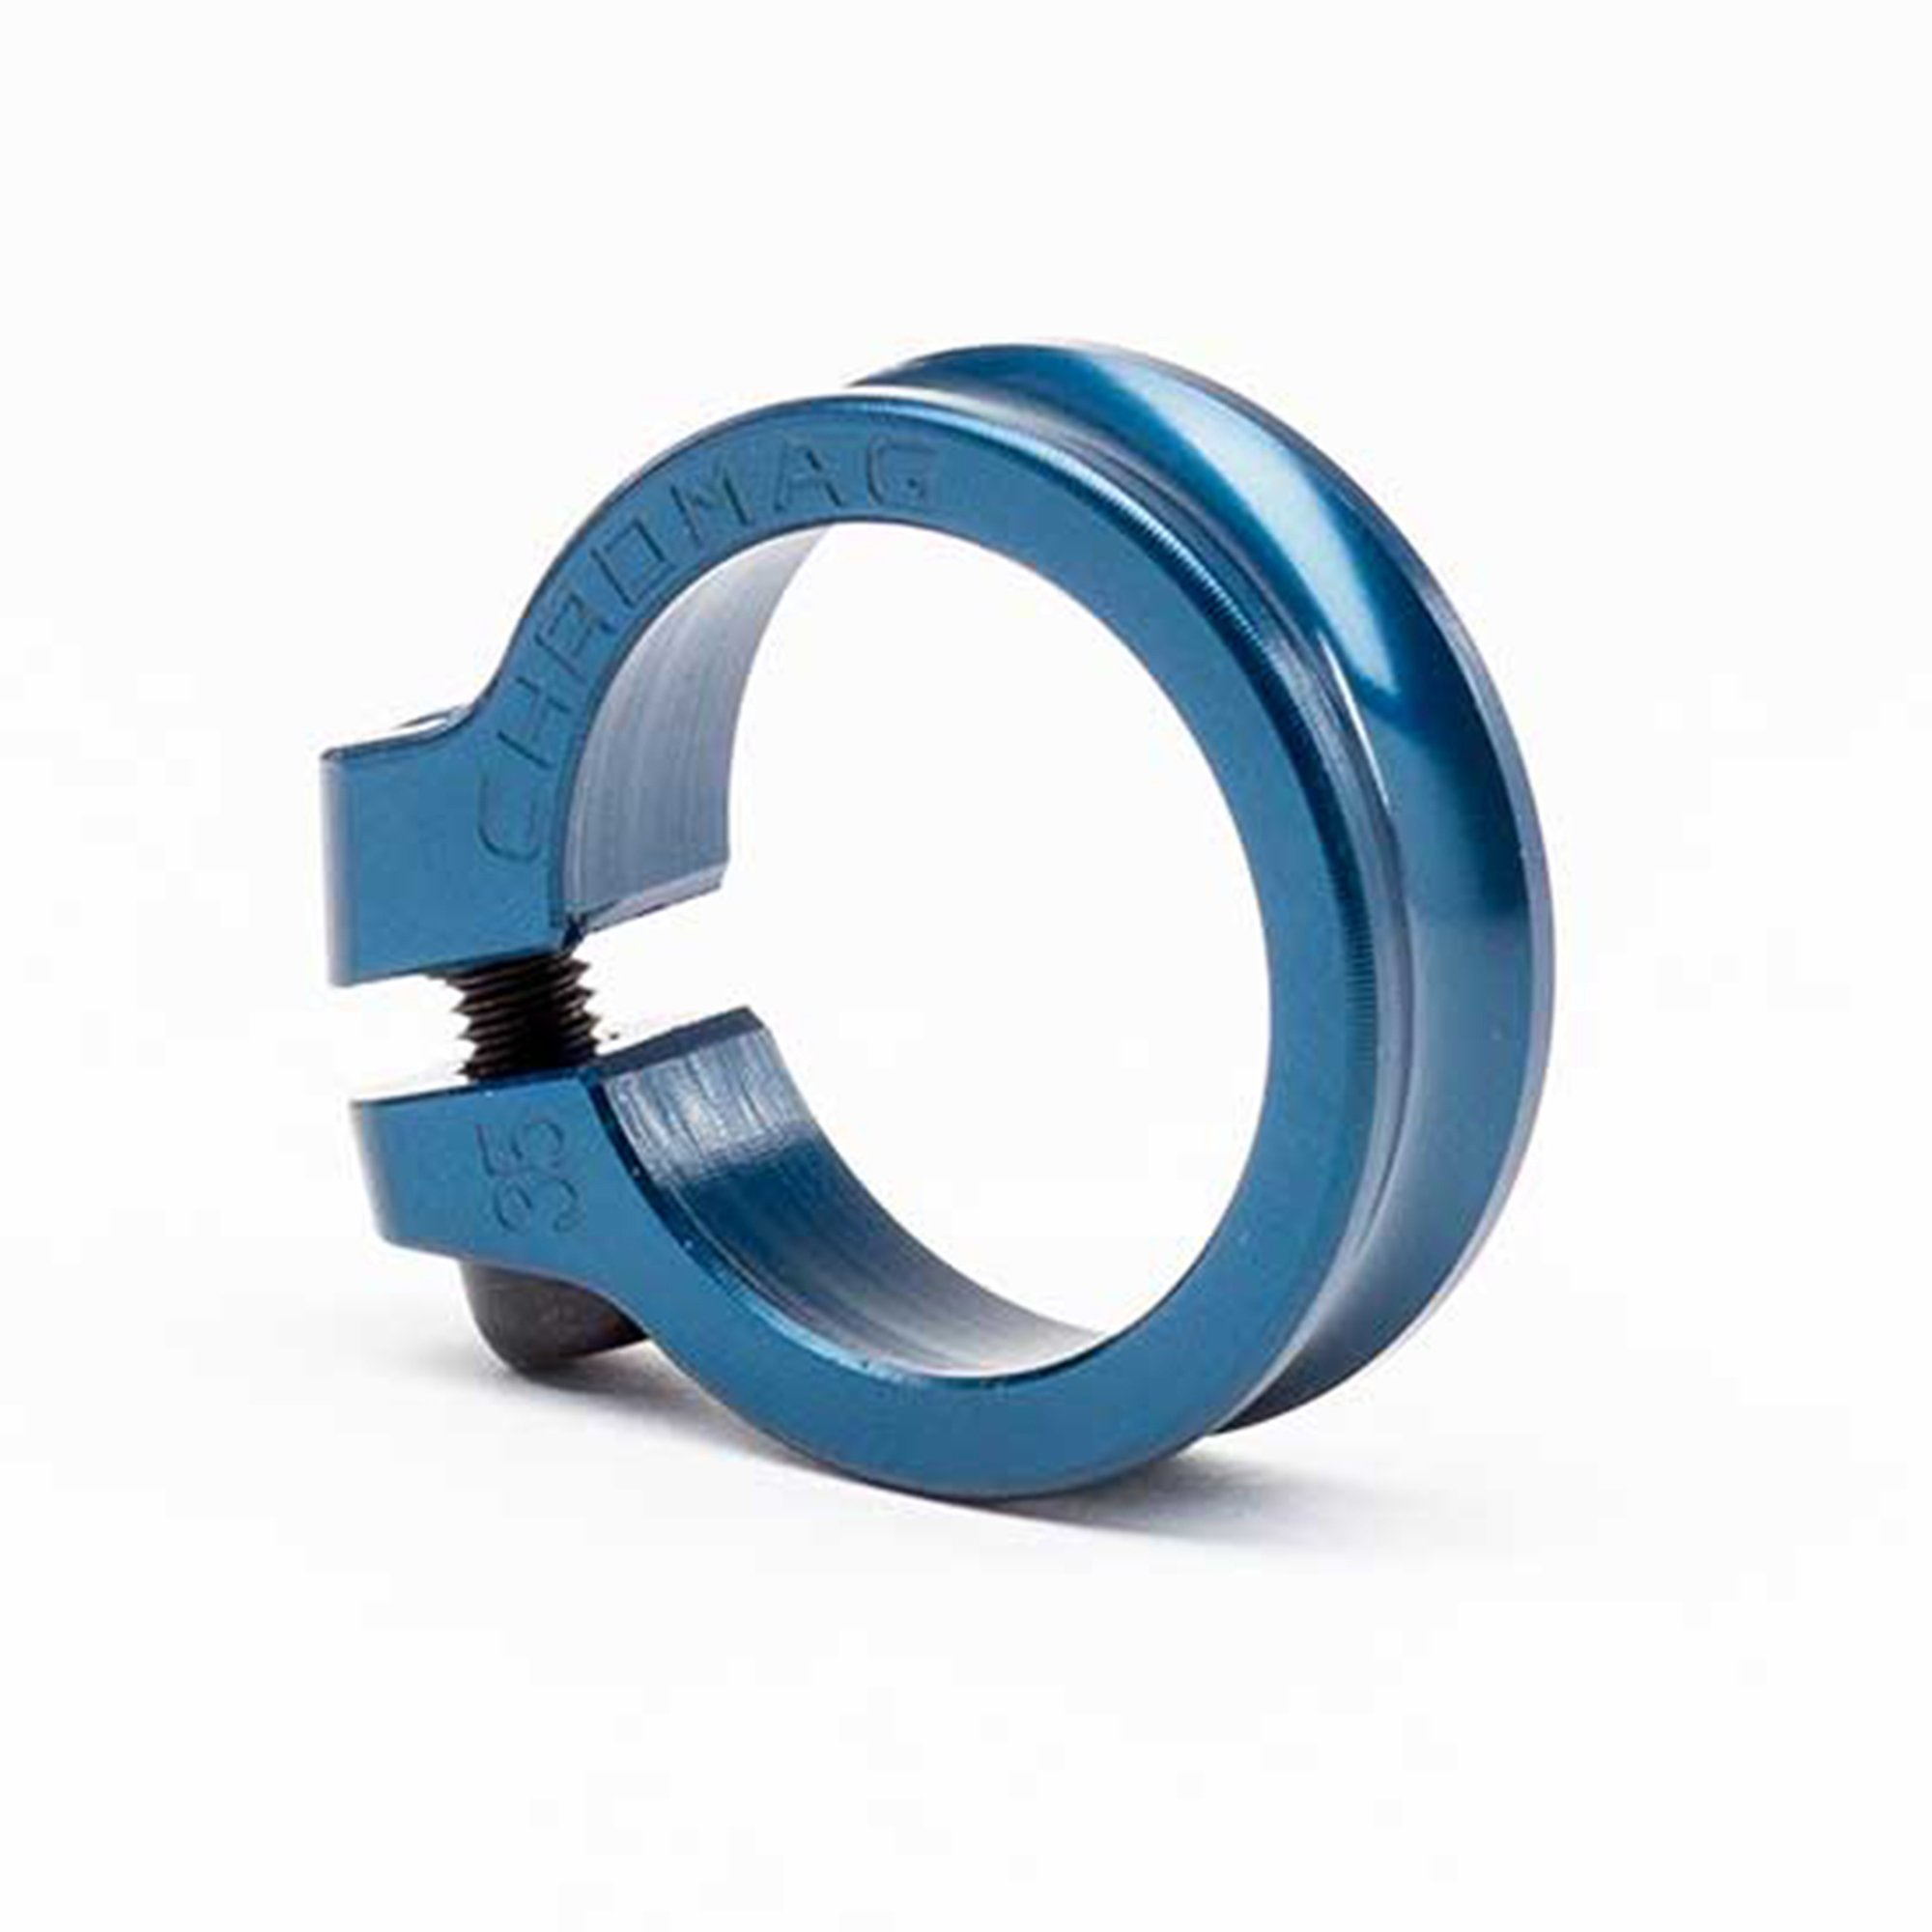 Chromag Bikes Seat Post Fixed Clamp - 35mm - blue